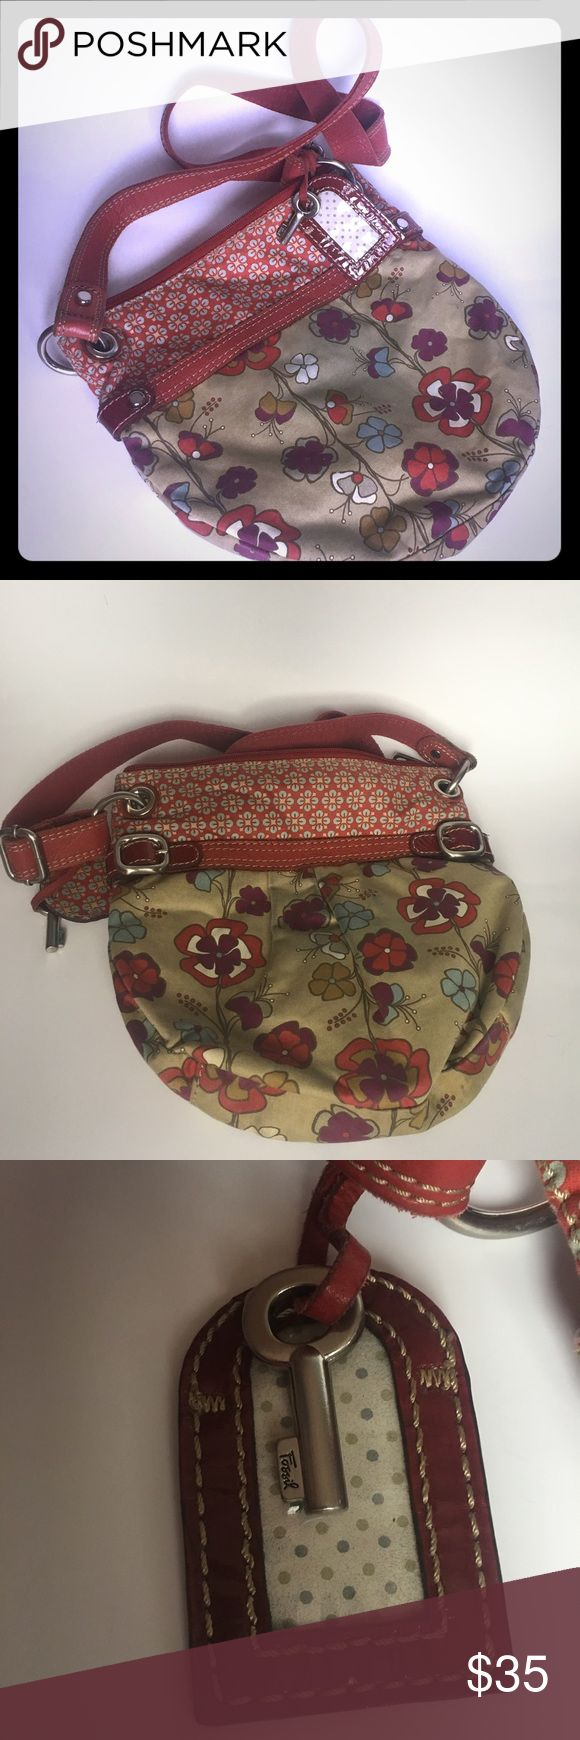 Fossil purse Fossil floral purse needs a good wash grate hobo bag lots of room inside is in good shape has fossil key and name tag Fossil Bags Hobos